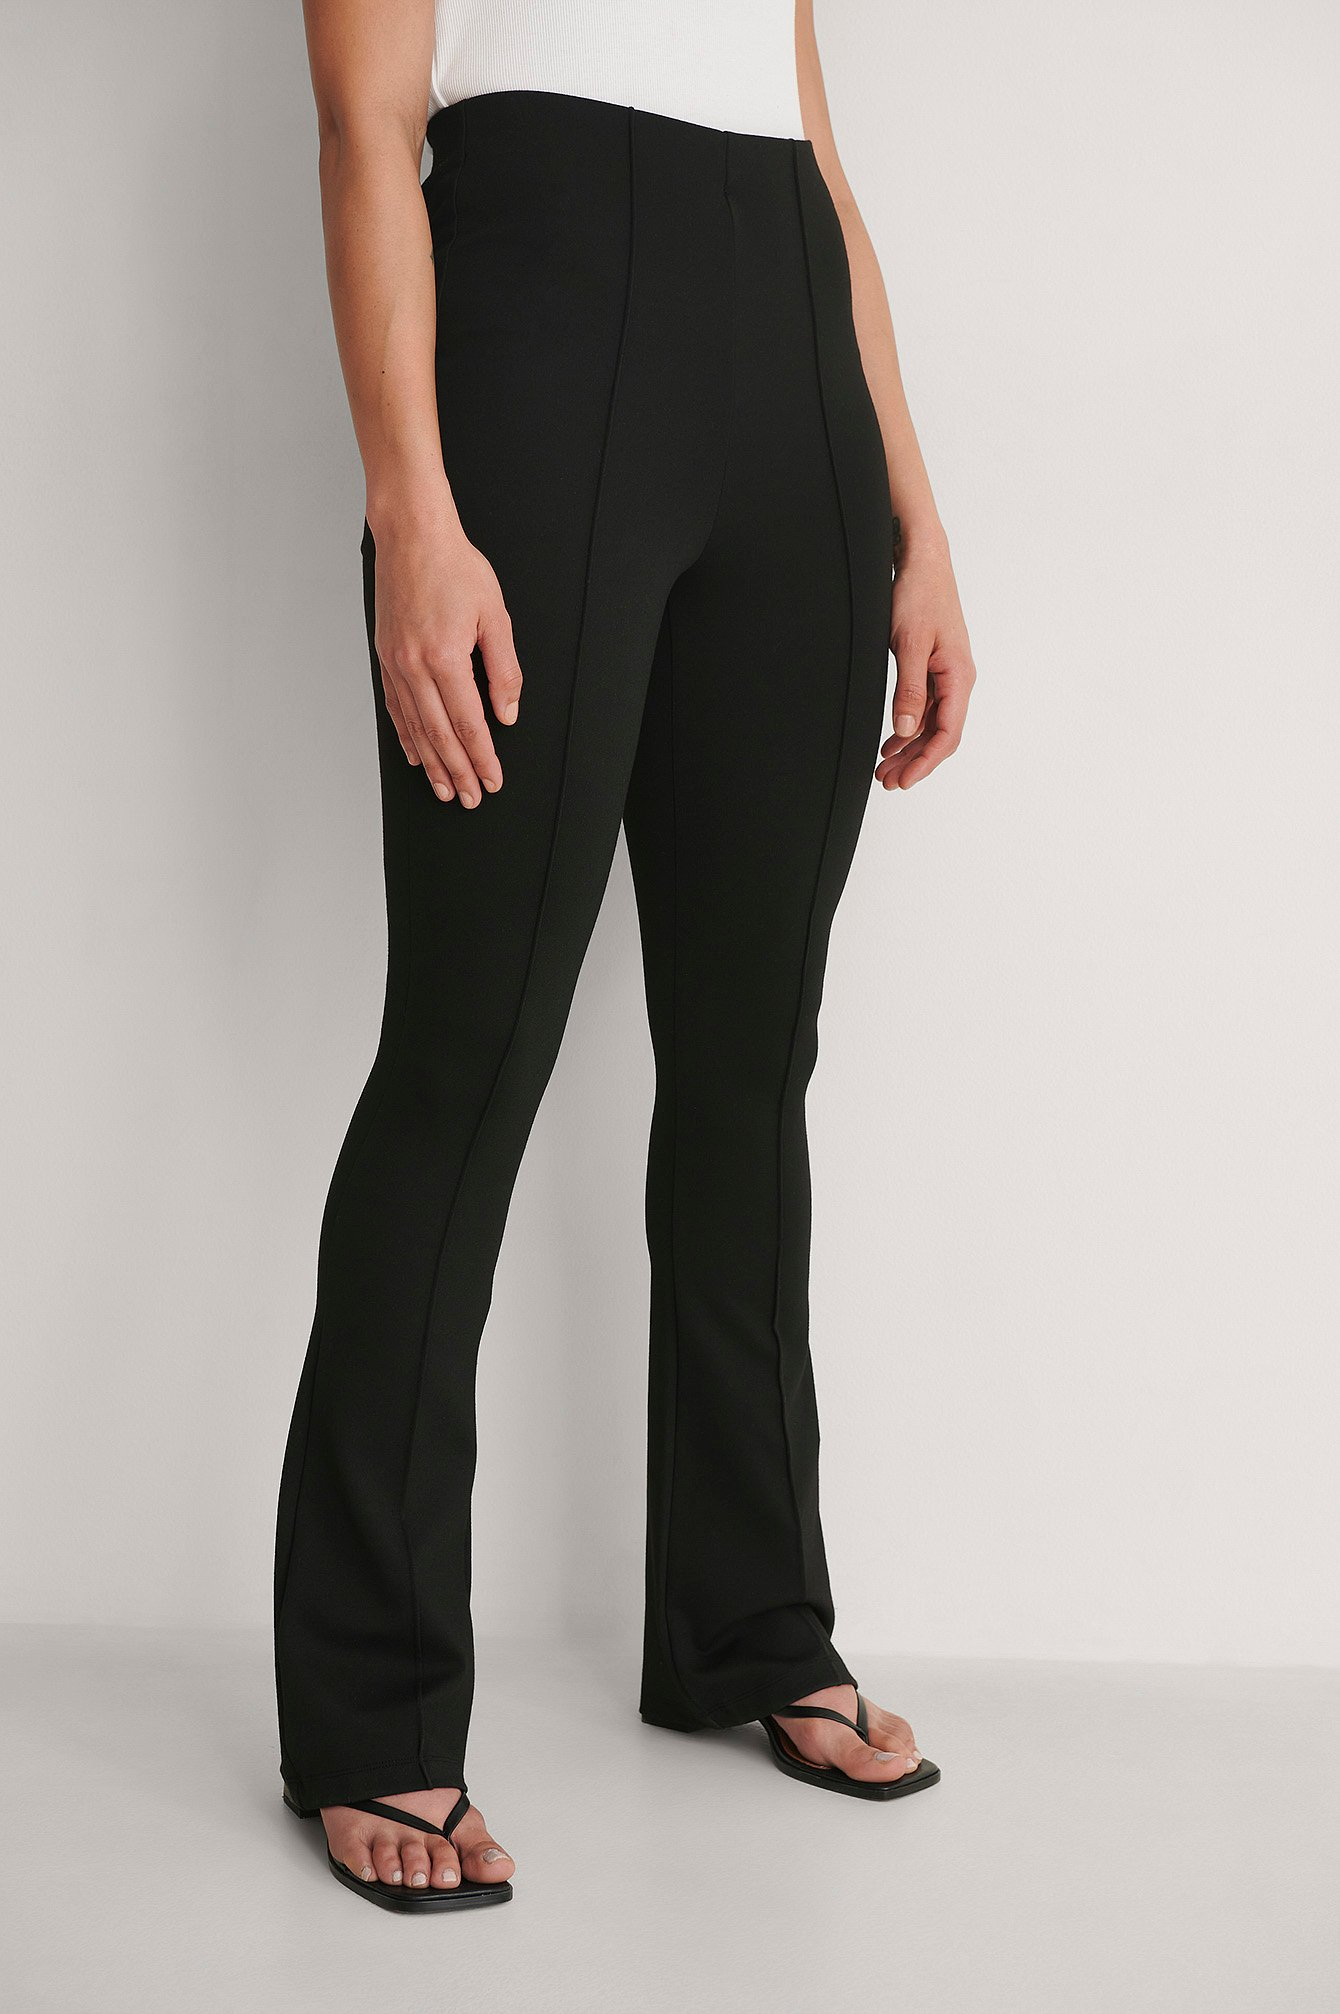 Black Seam Detail Jersey Pants